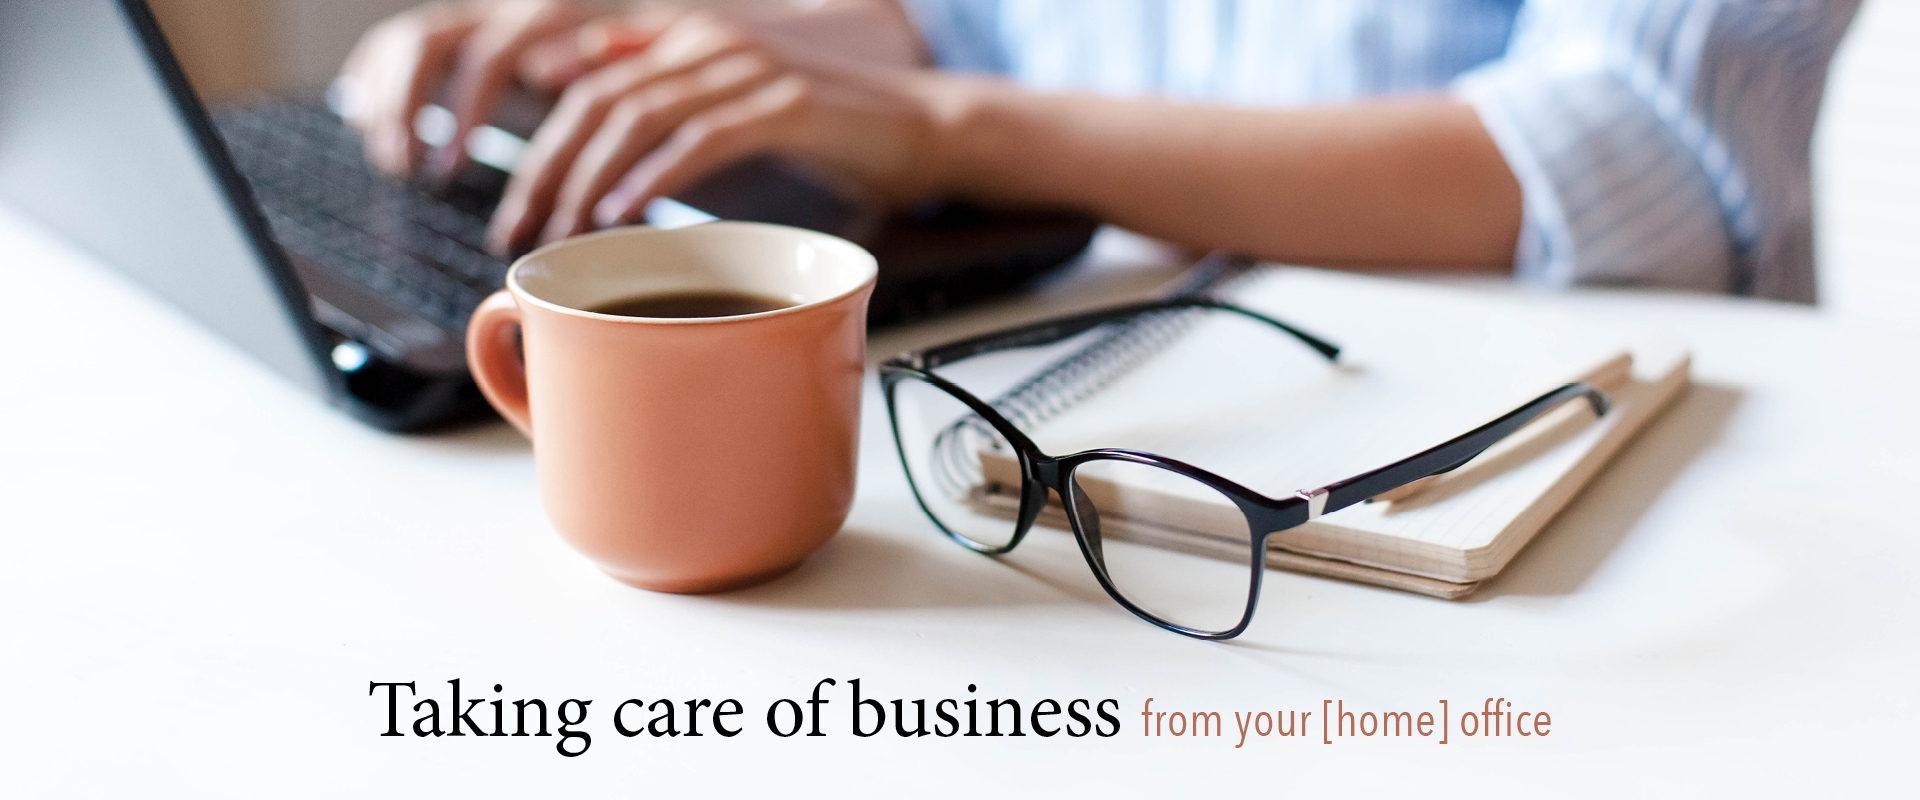 Taking care of business from your [home] office Banner